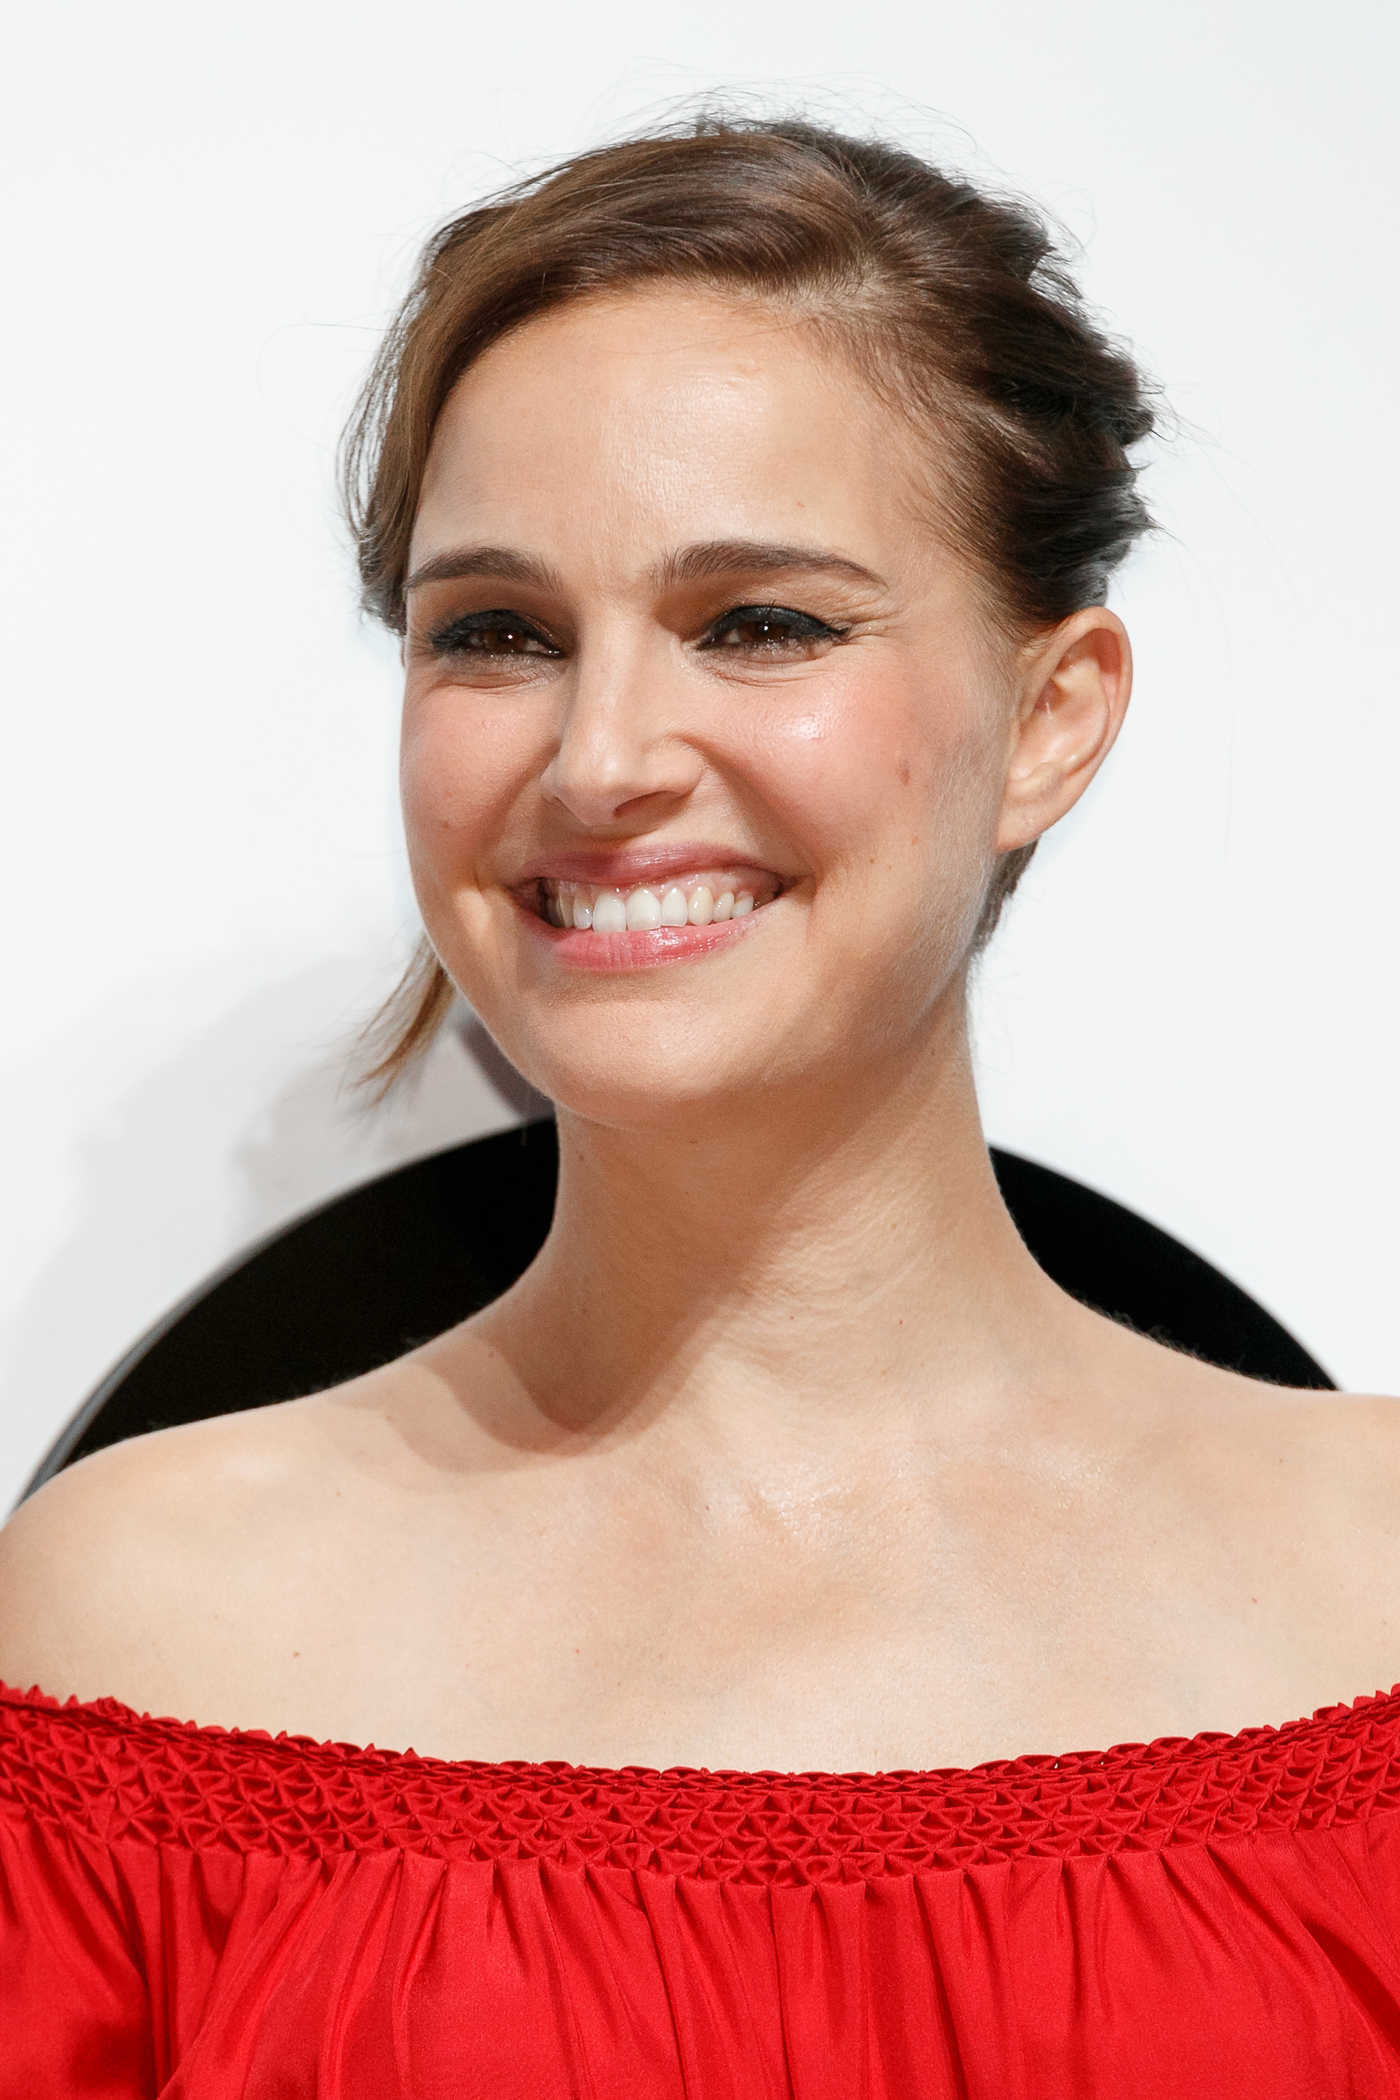 Natalie Portman nude (64 photos), pics Sideboobs, Snapchat, cleavage 2019